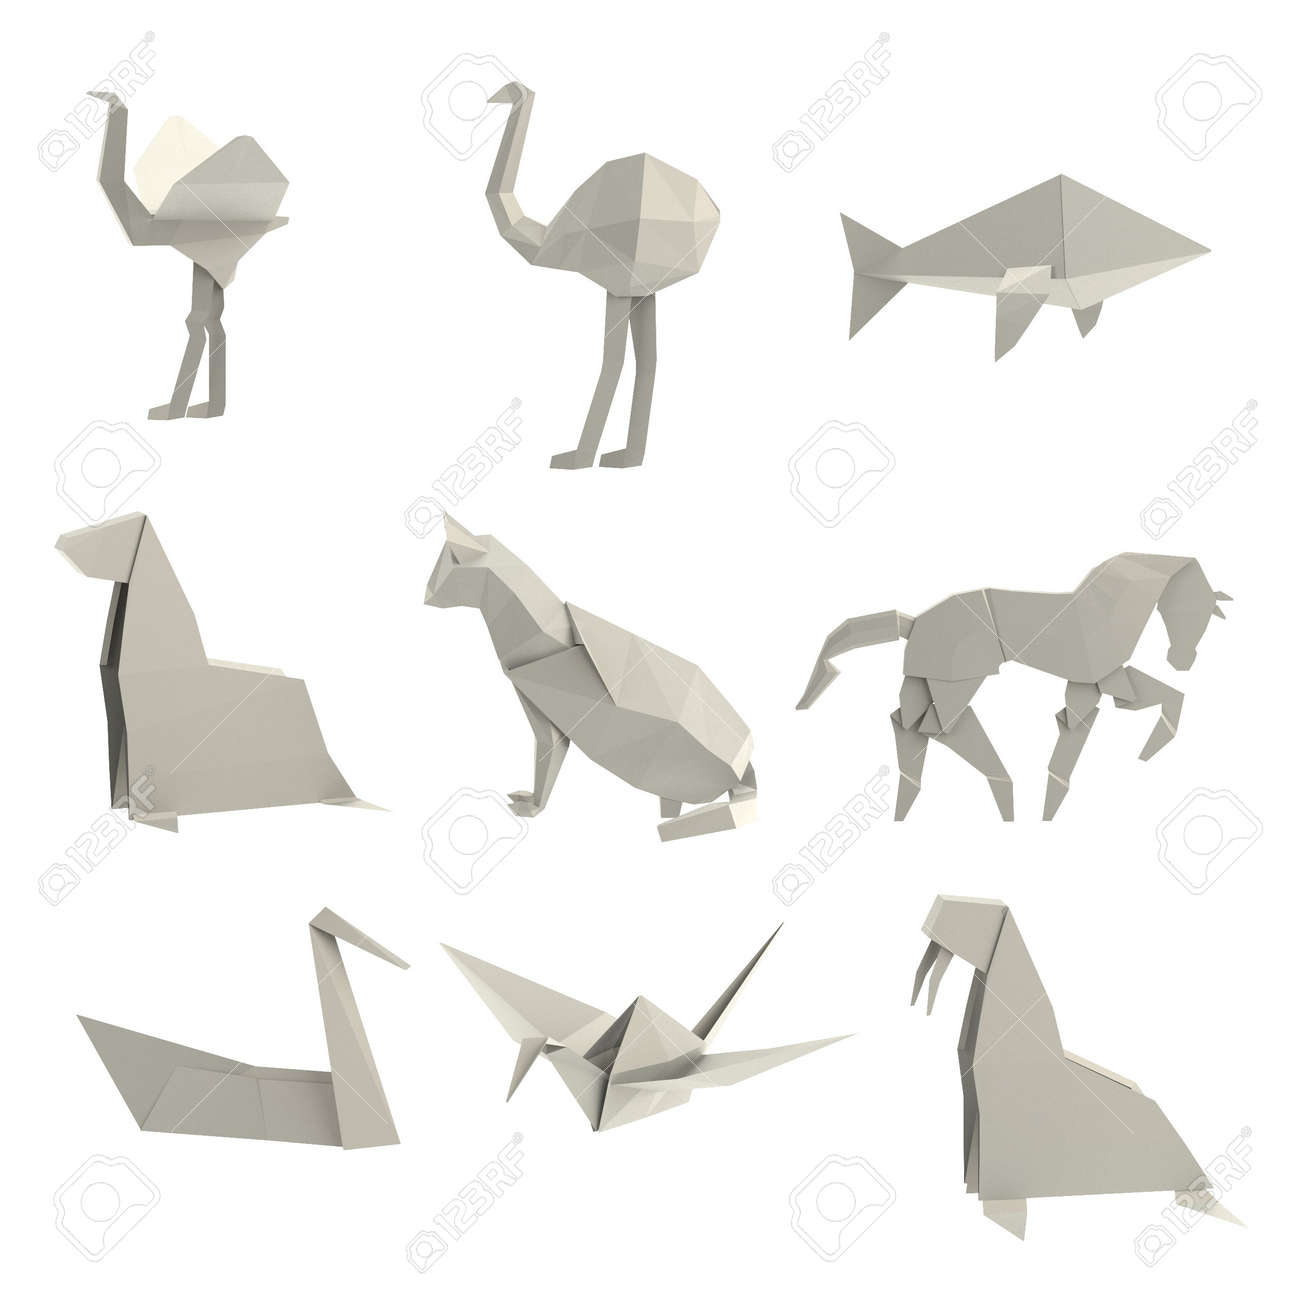 realistic 3d render of origami animals